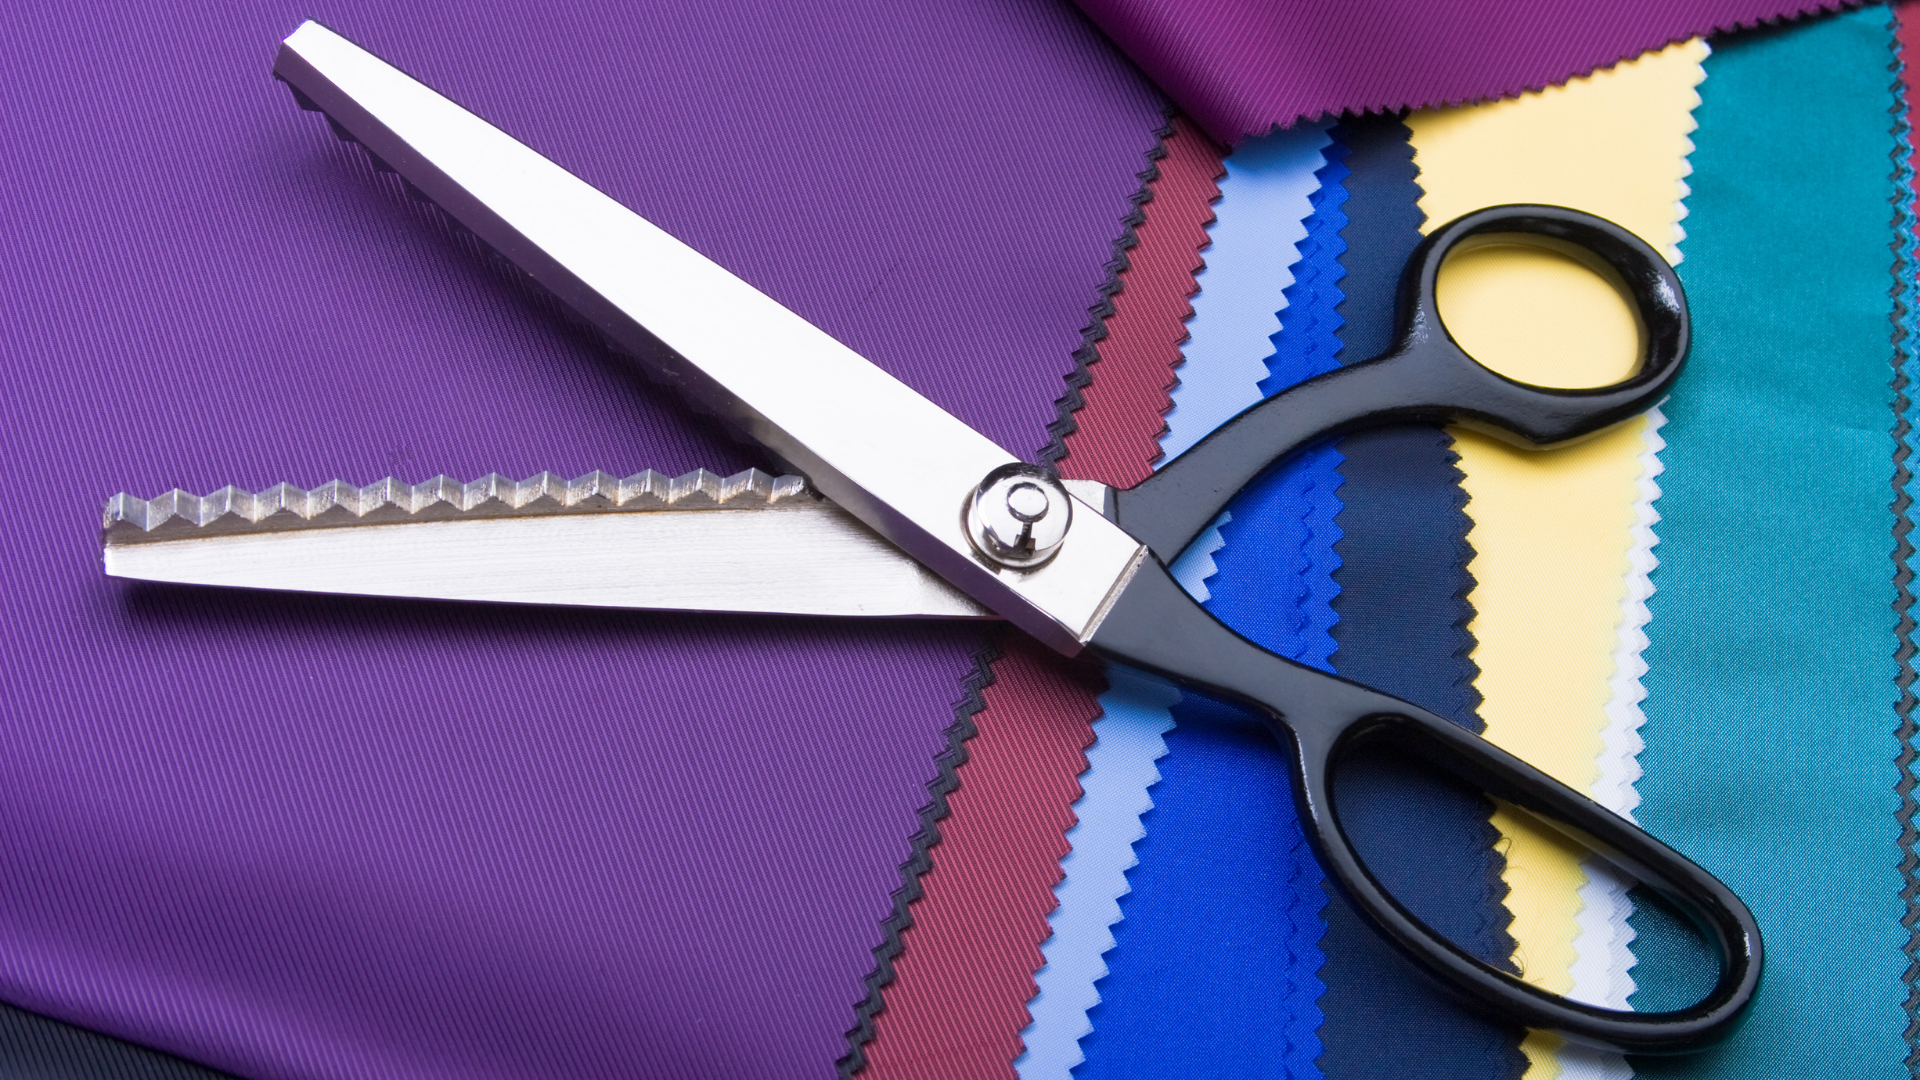 Read more about the article 8 BEST Sewing Scissors in 2021